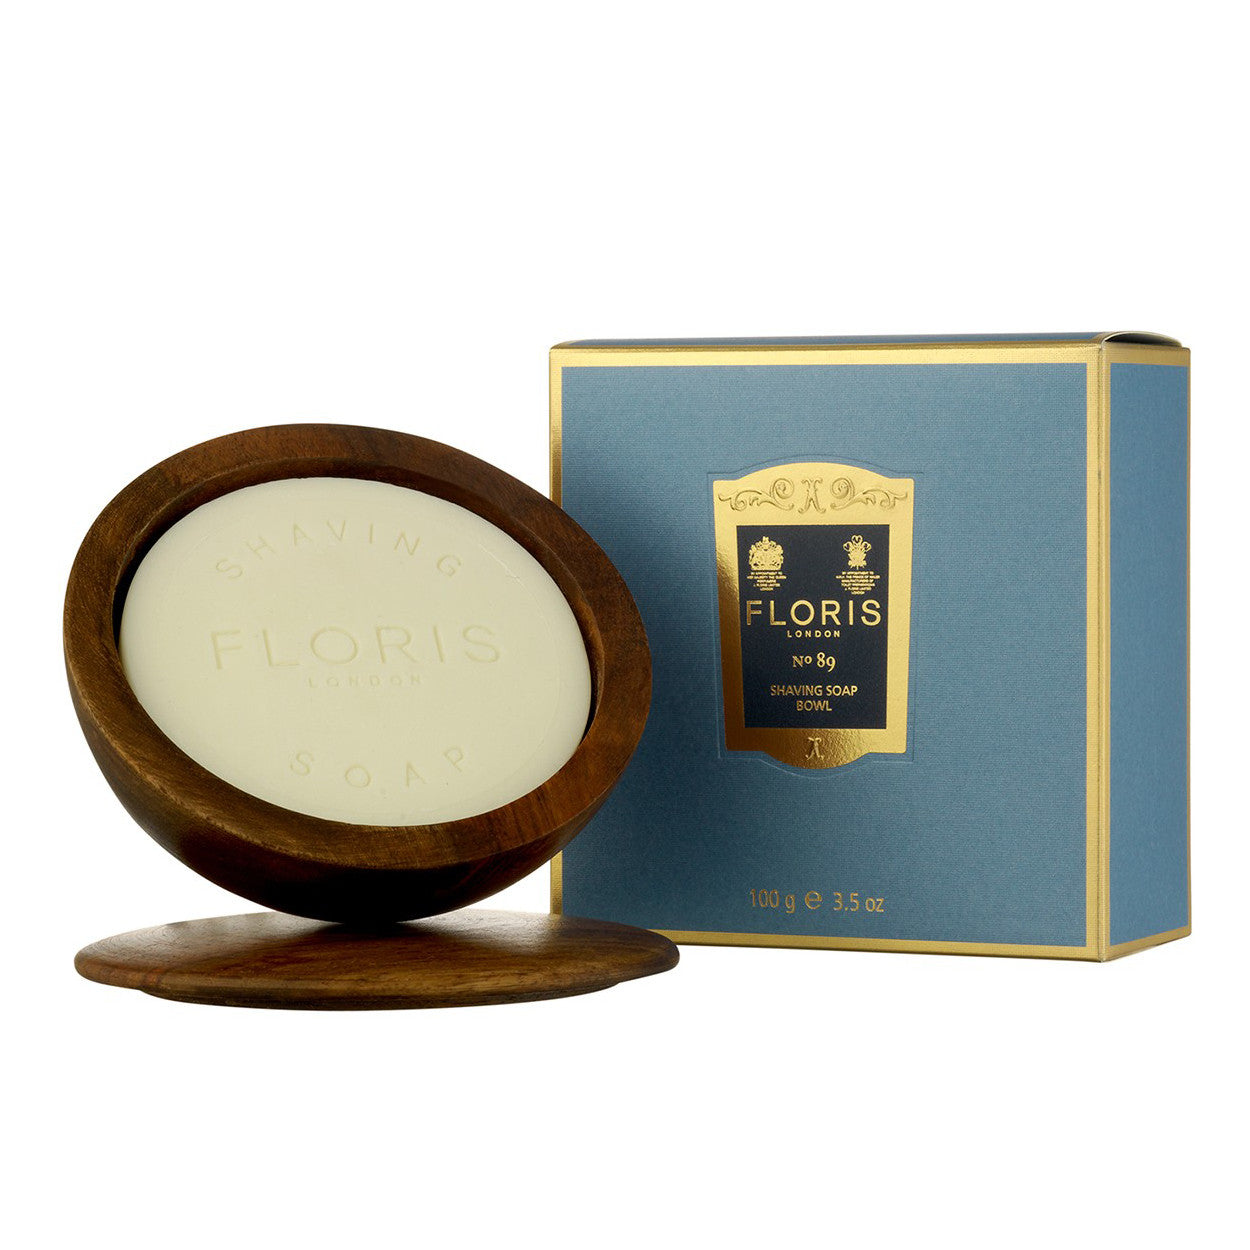 Floris – No. 89 Shaving Soap